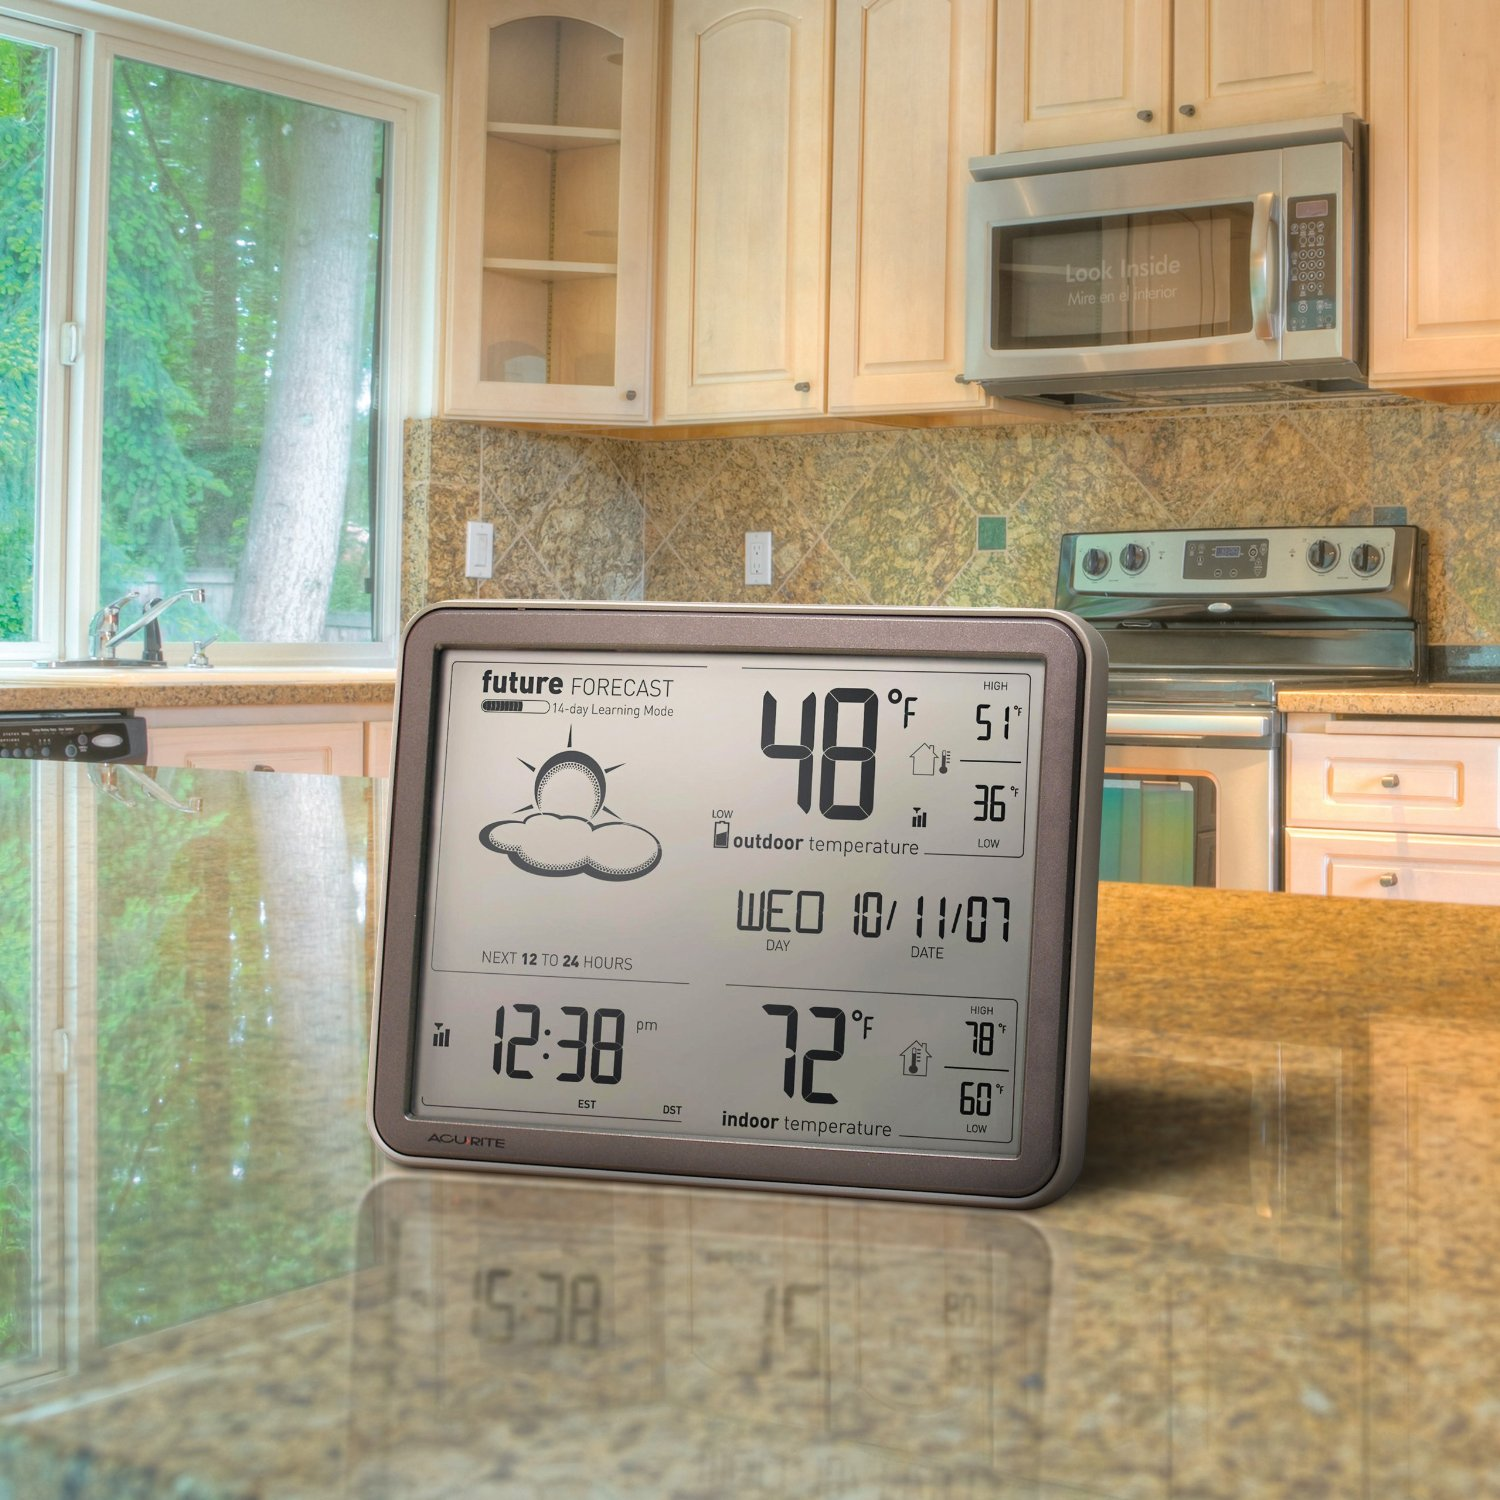 AcuRite Wall Clock with Weather Station and Jumbo Display